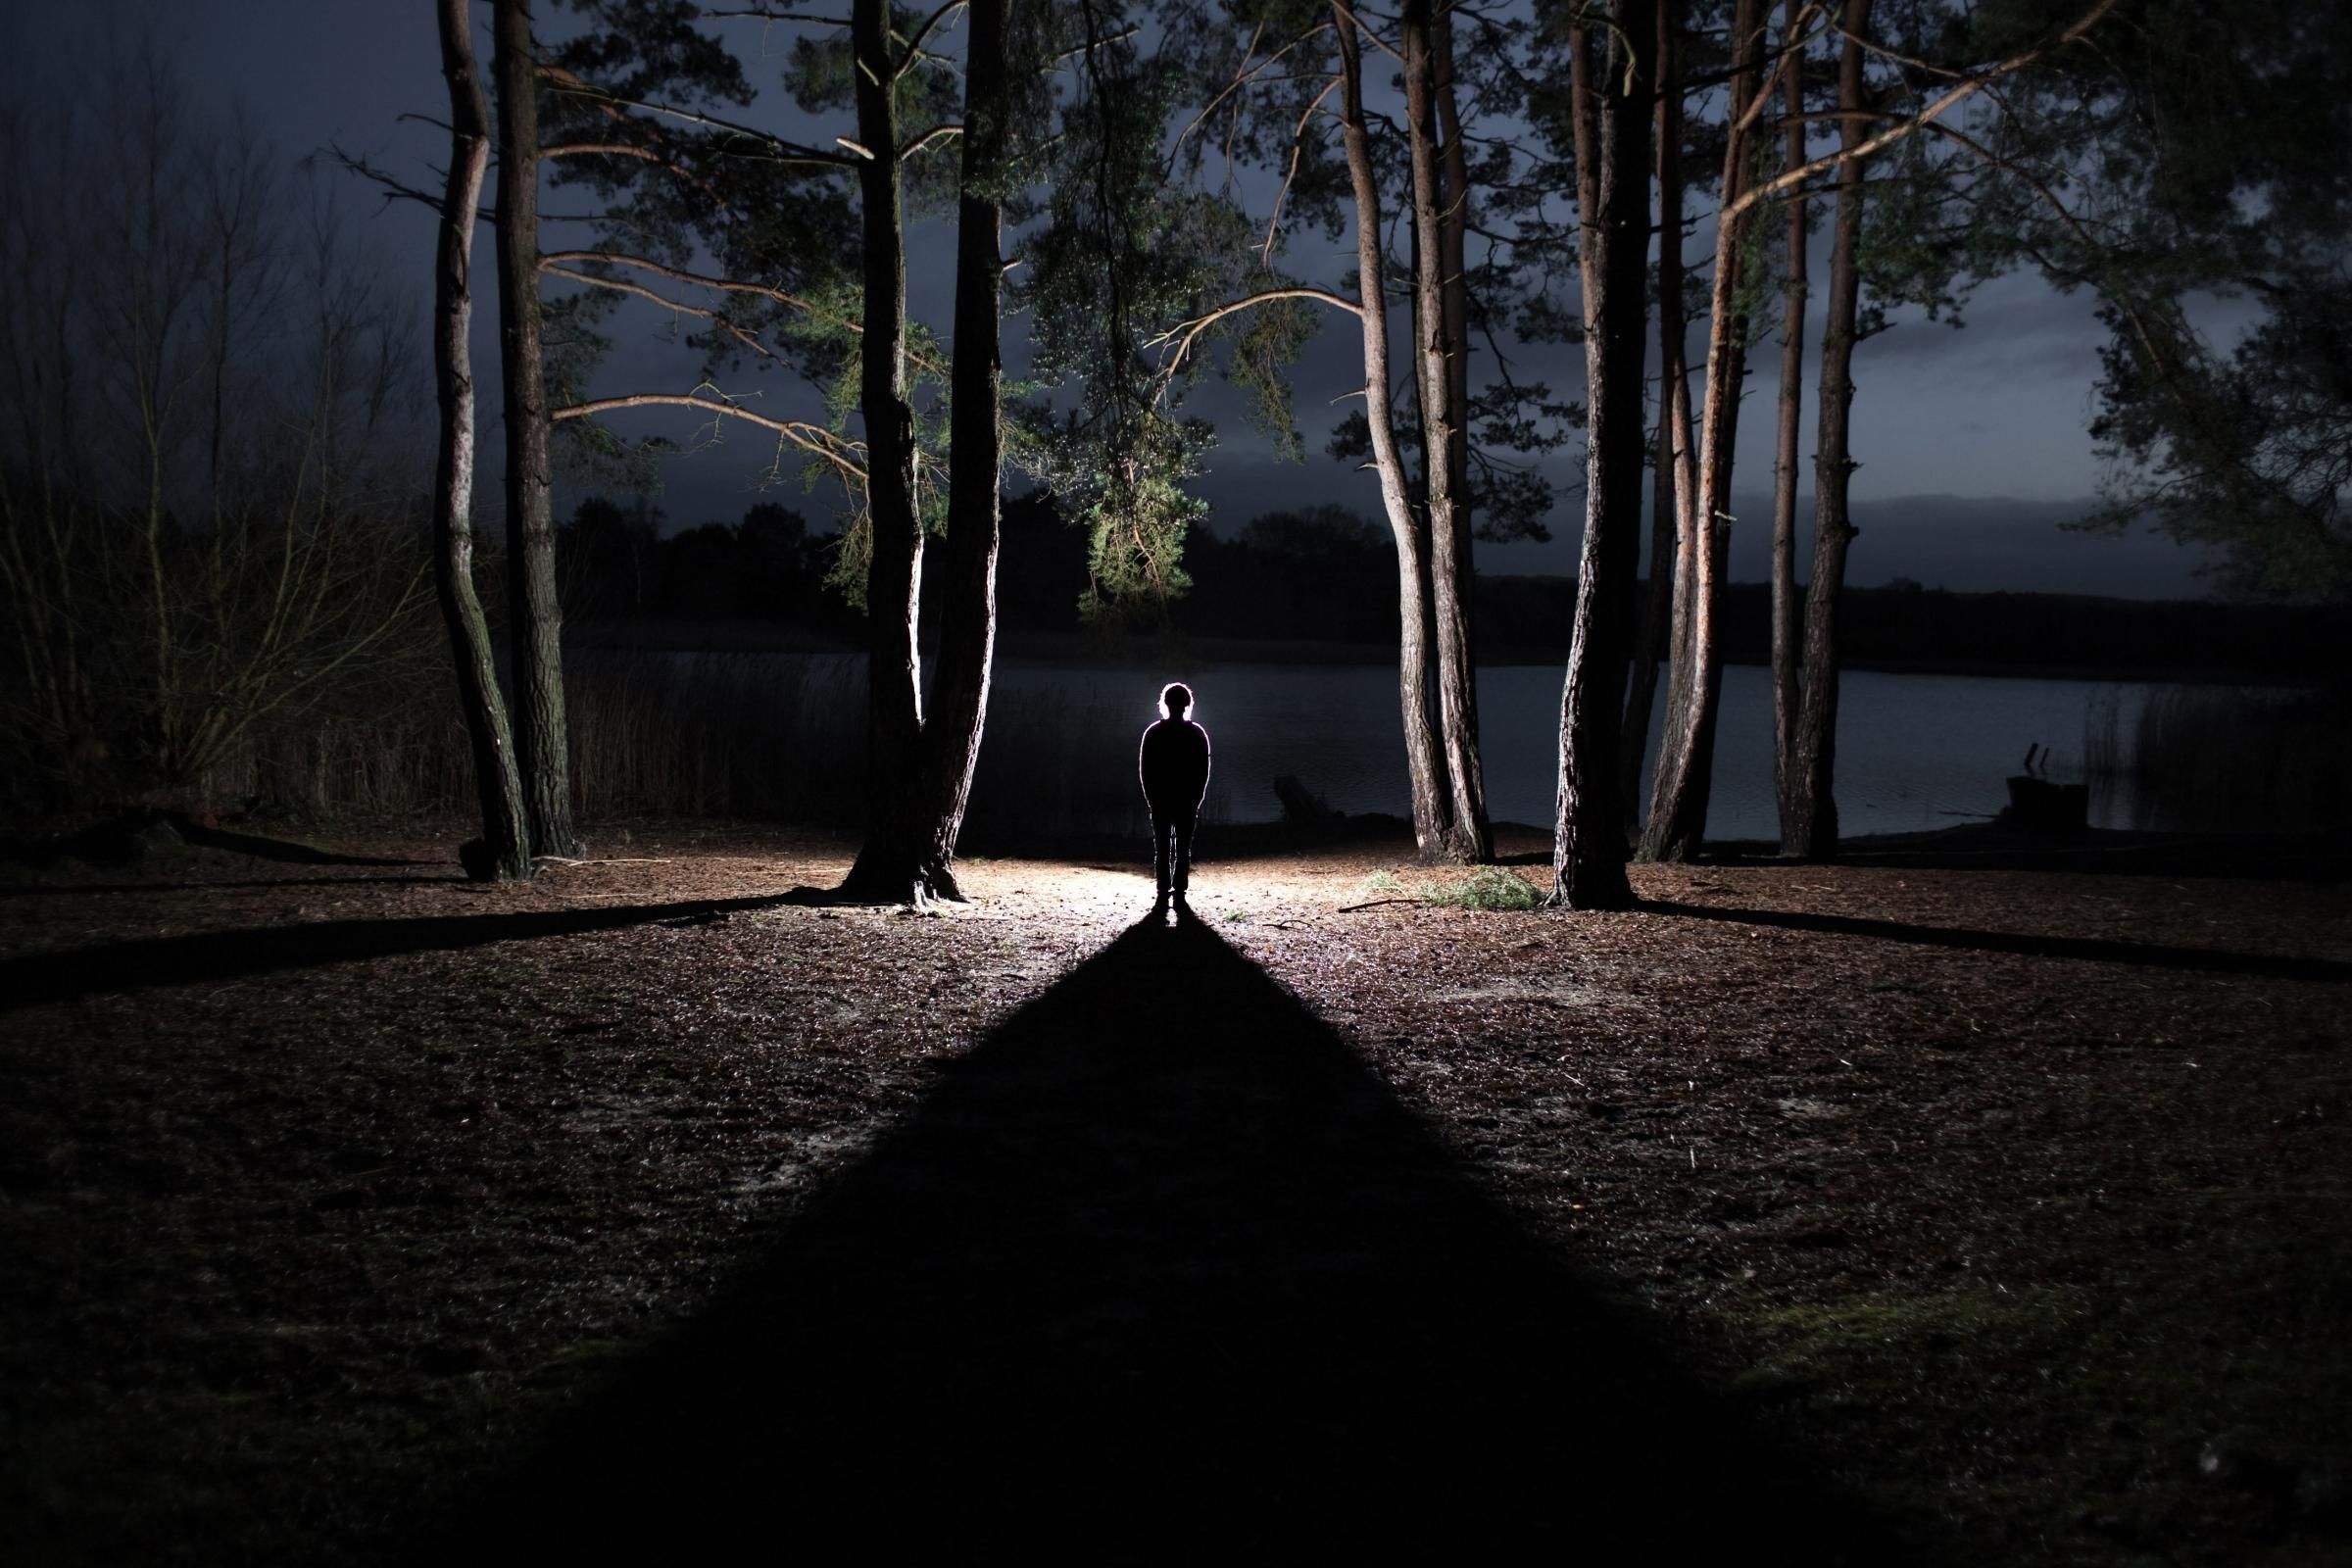 Essay Of The Week A Walk On The Dark Side Photography Dark Side Art Photography